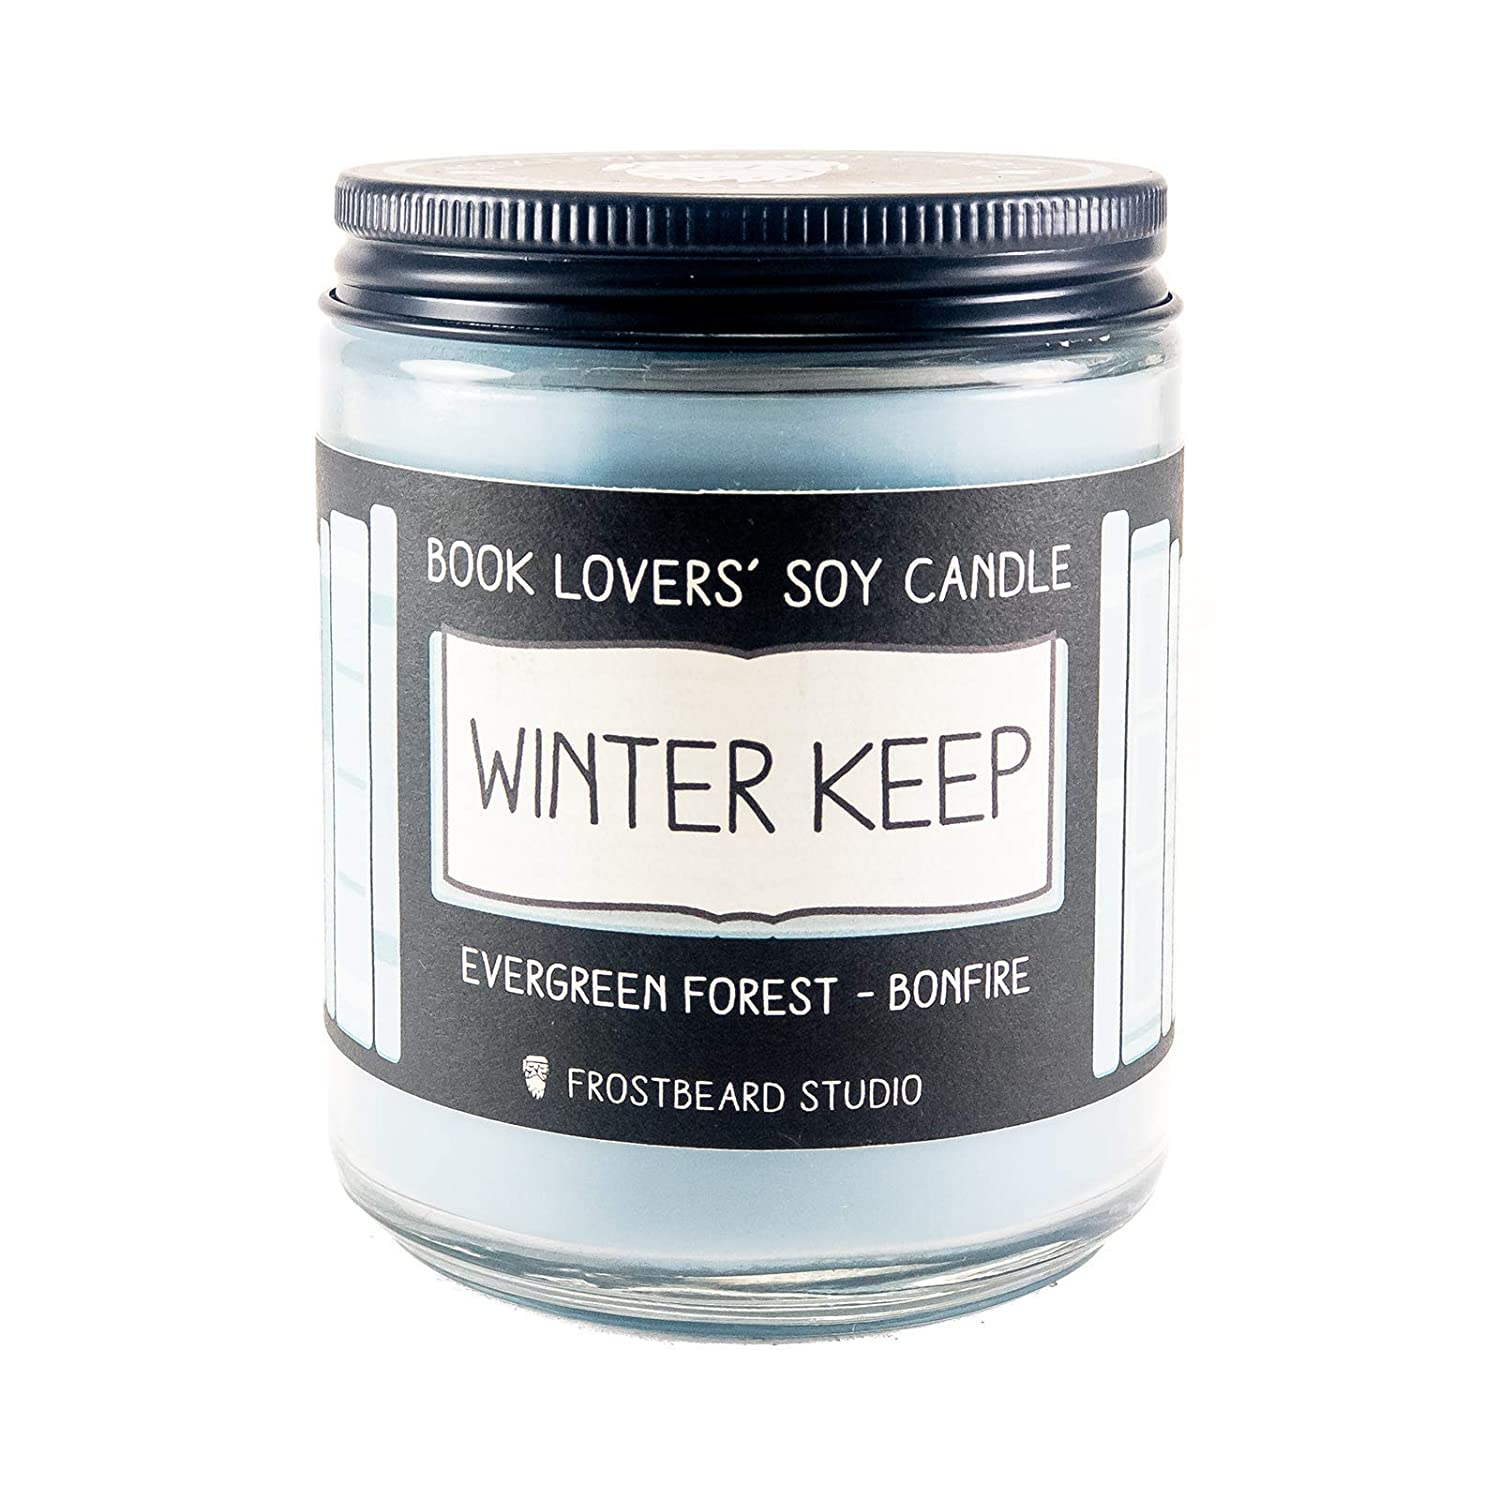 Winter Keep - Book Lovers' Soy Candle - 8oz Jar